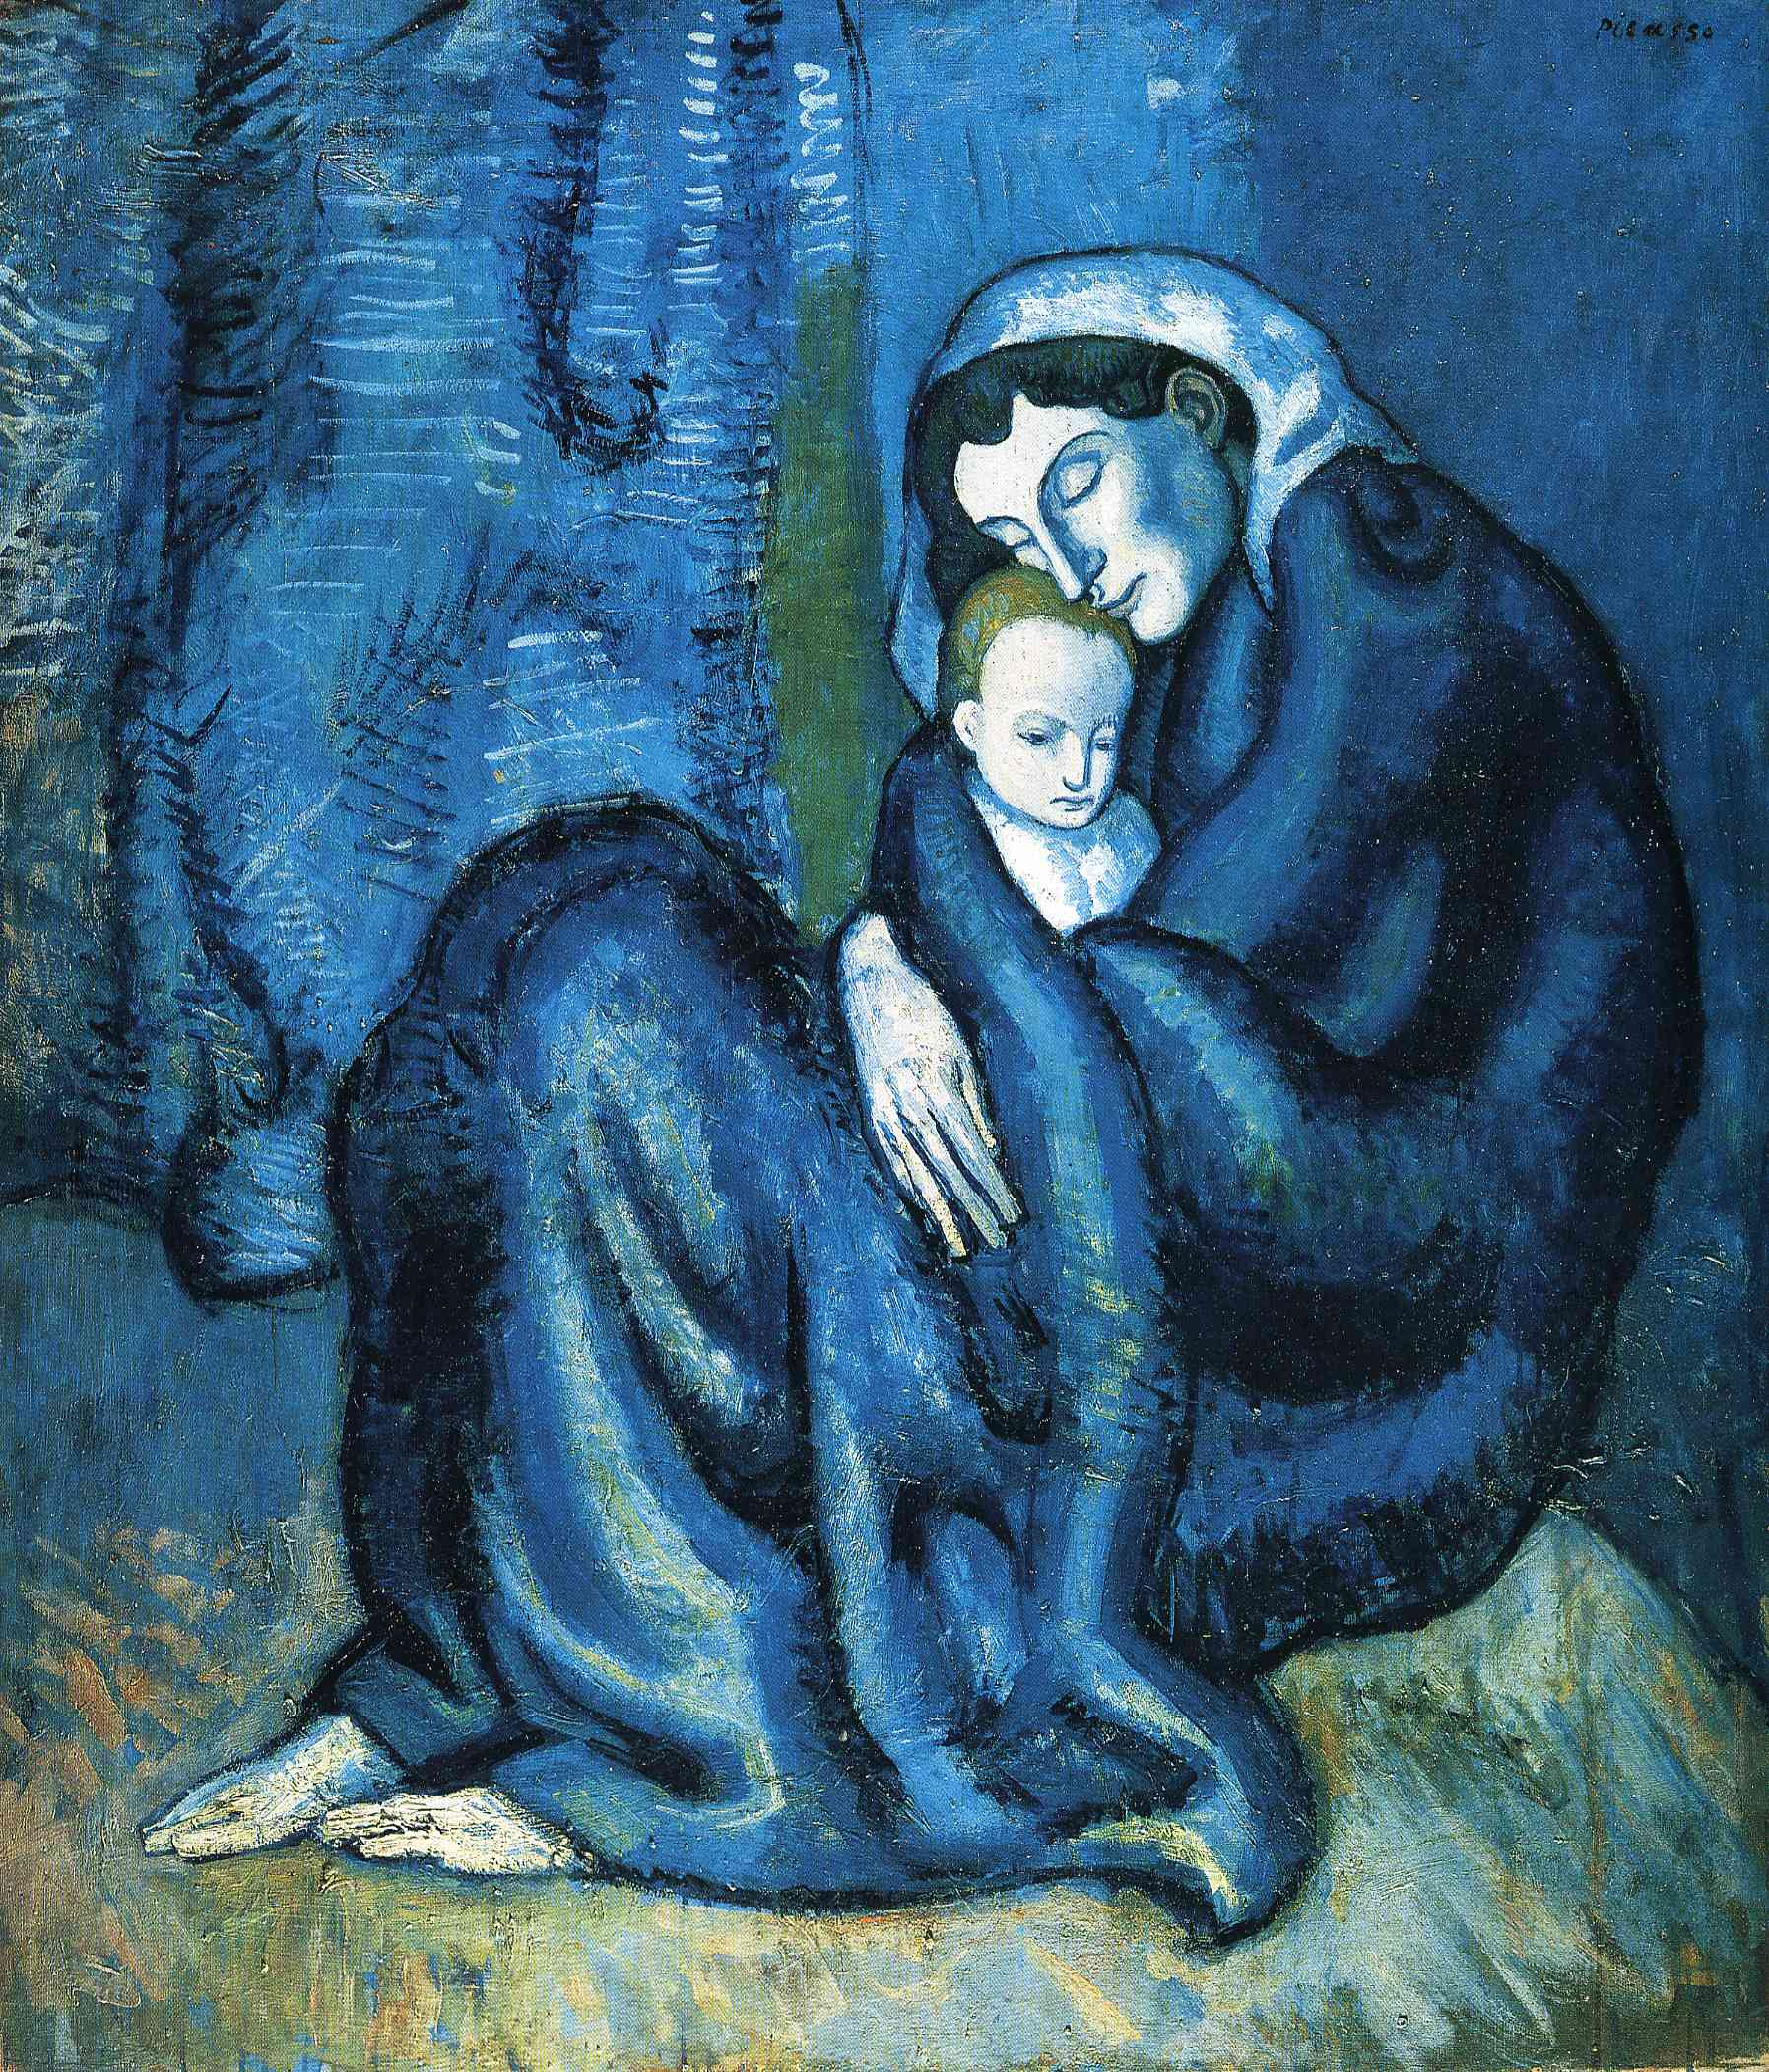 Mother and Child, by Picasso age 23